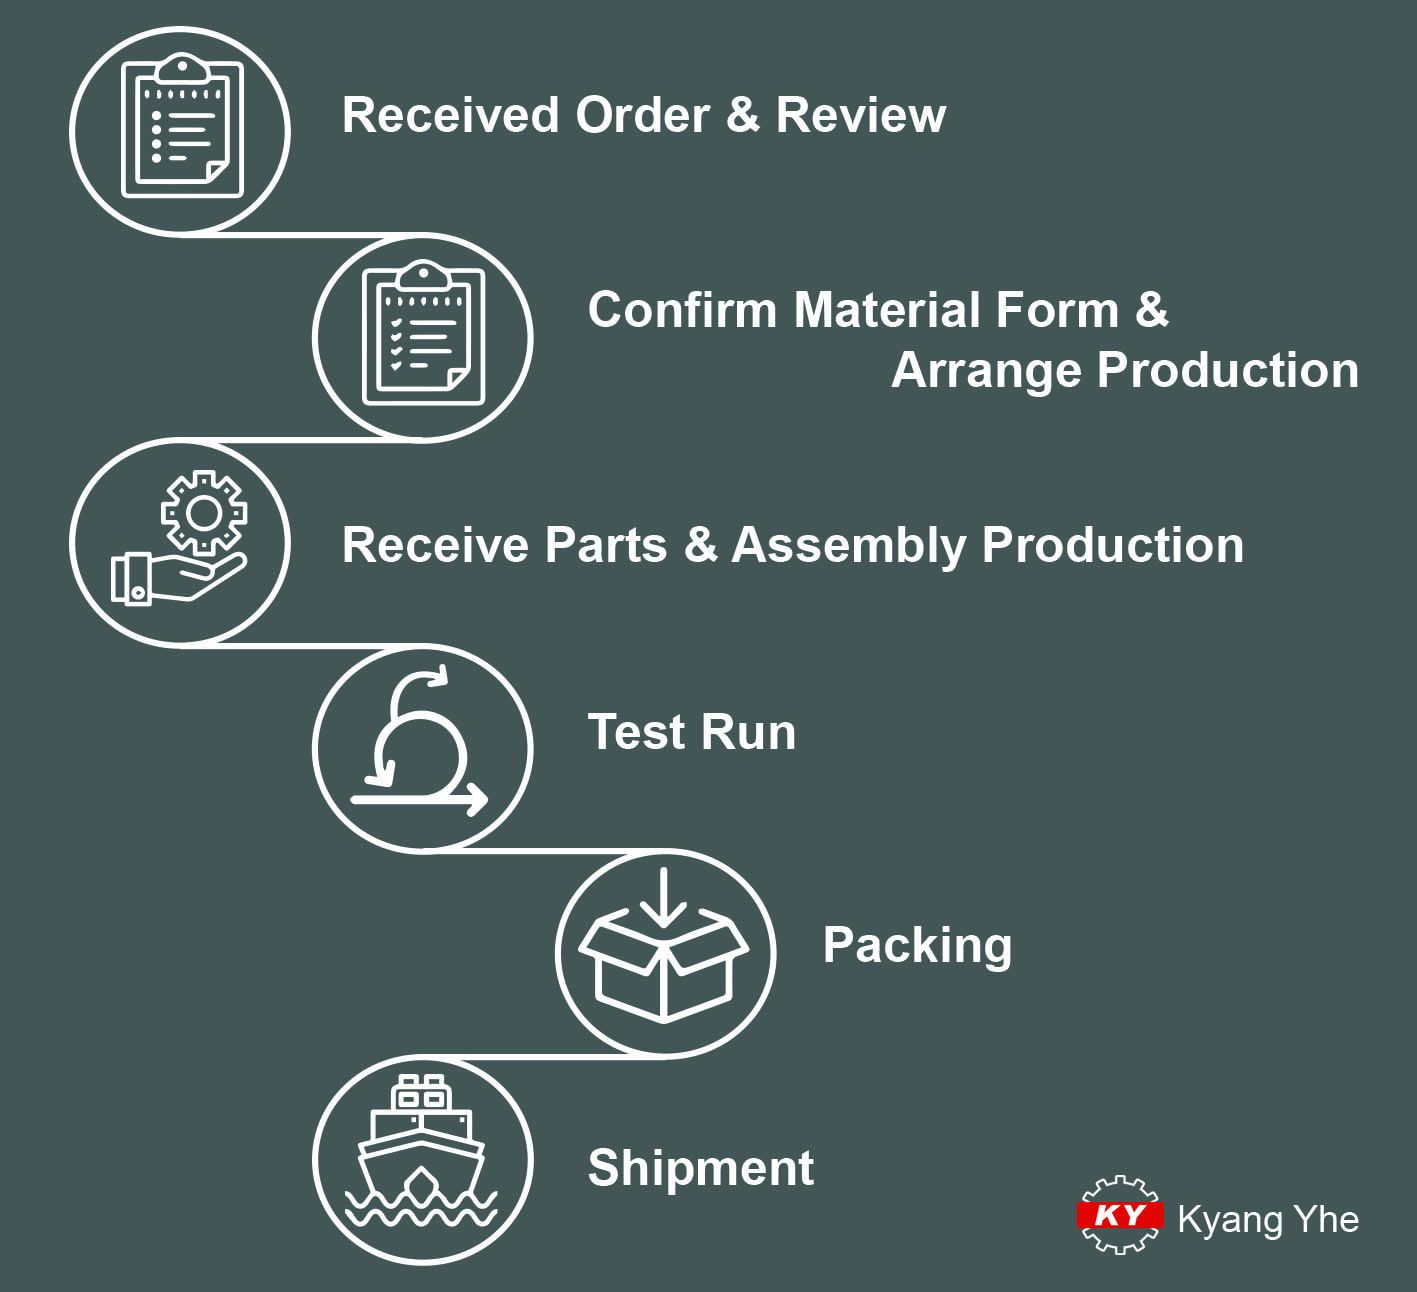 Kyangyhe Production Process